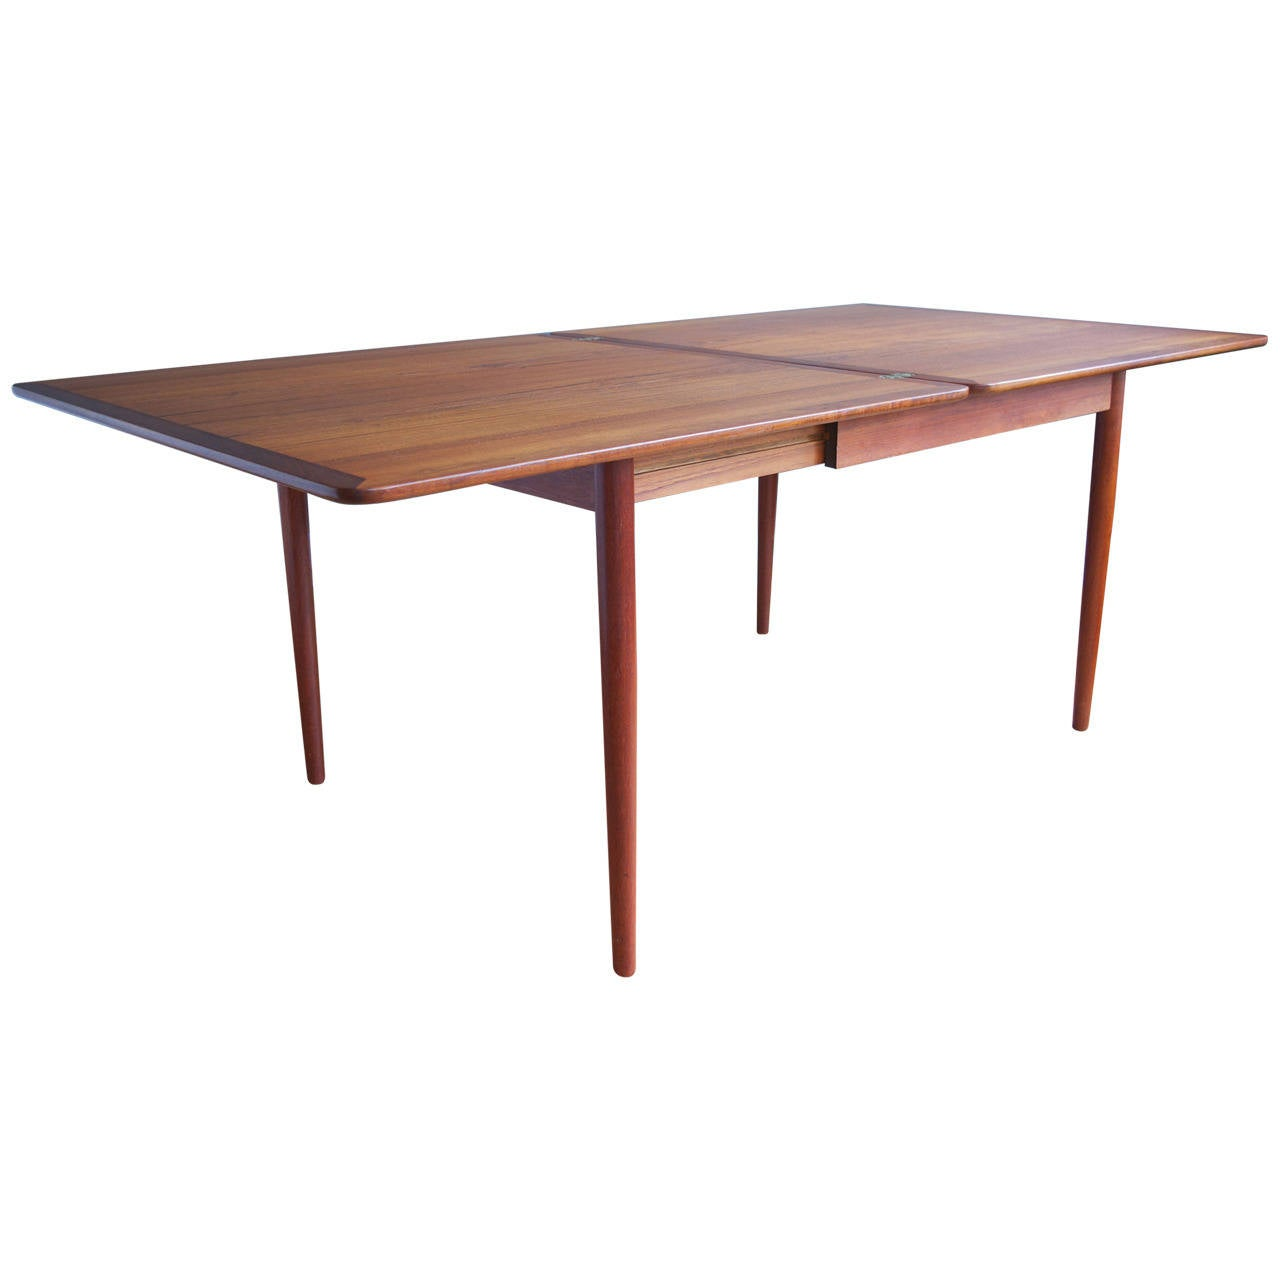 Teak flip top dining table by grete jalk at 1stdibs for Biggest dining table